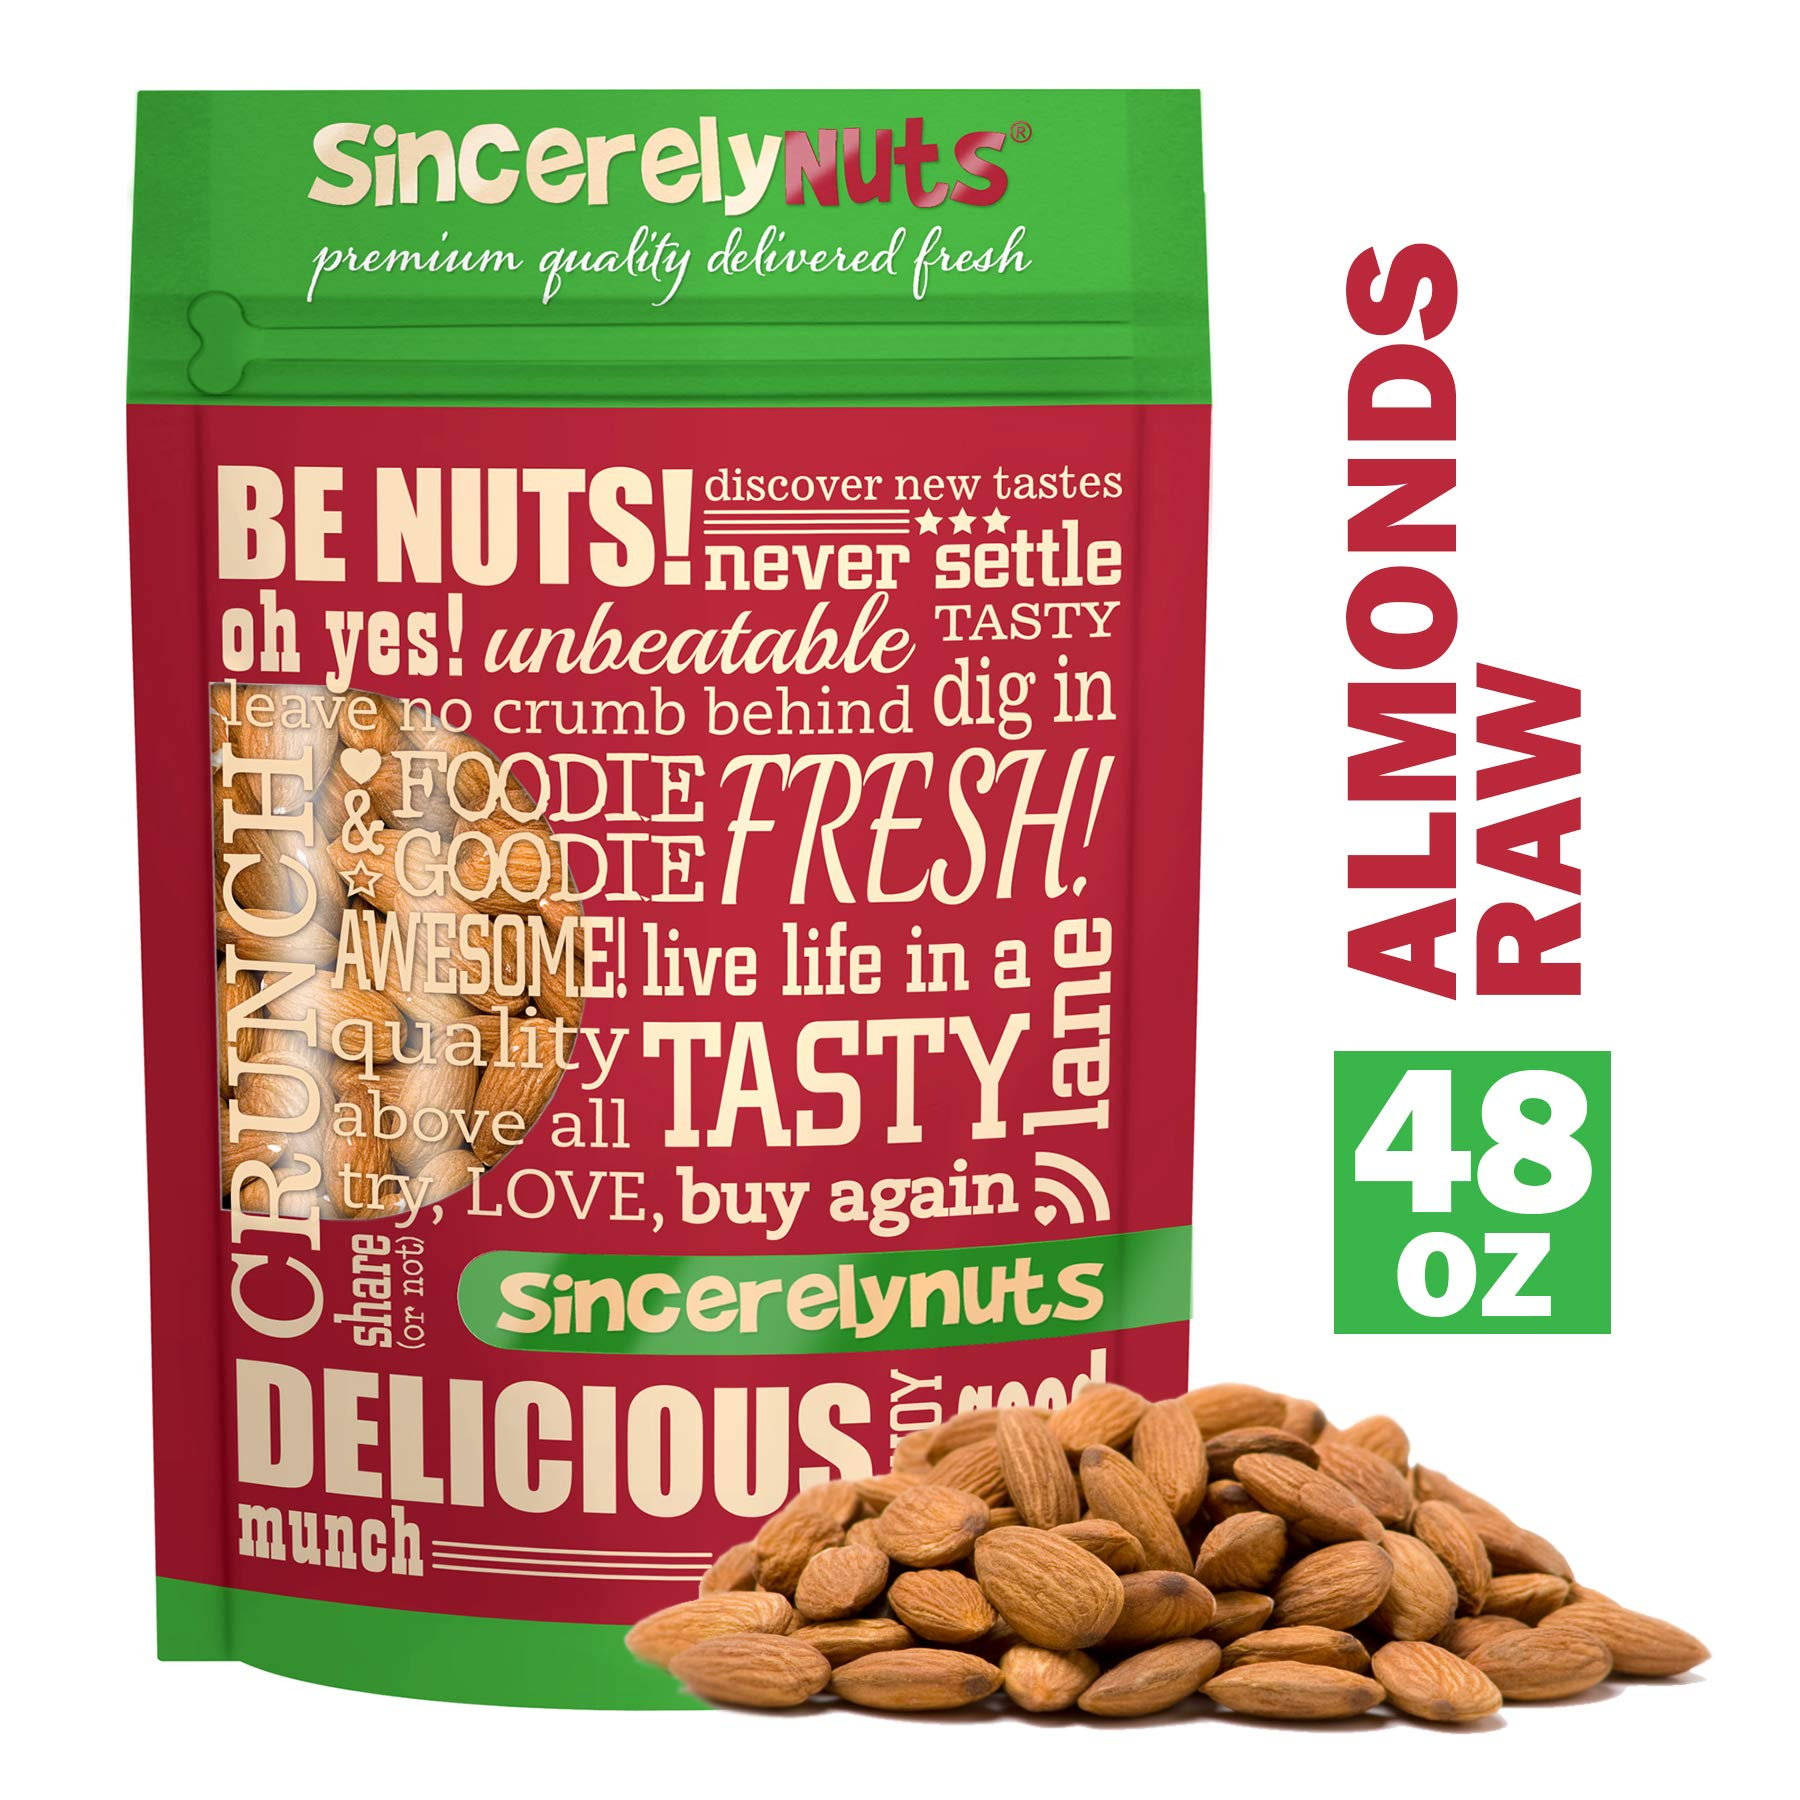 Sincerely Nuts - Natural Whole Raw Almonds Unsalted No Shell | 3 Lb. Bag | Low Calorie, Low Sodium, Kosher, Vegan, Gluten Free | Gourmet Kosher Snack Food | Source of Fiber, Protein, Nutrients by Sincerely Nuts (Image #1)